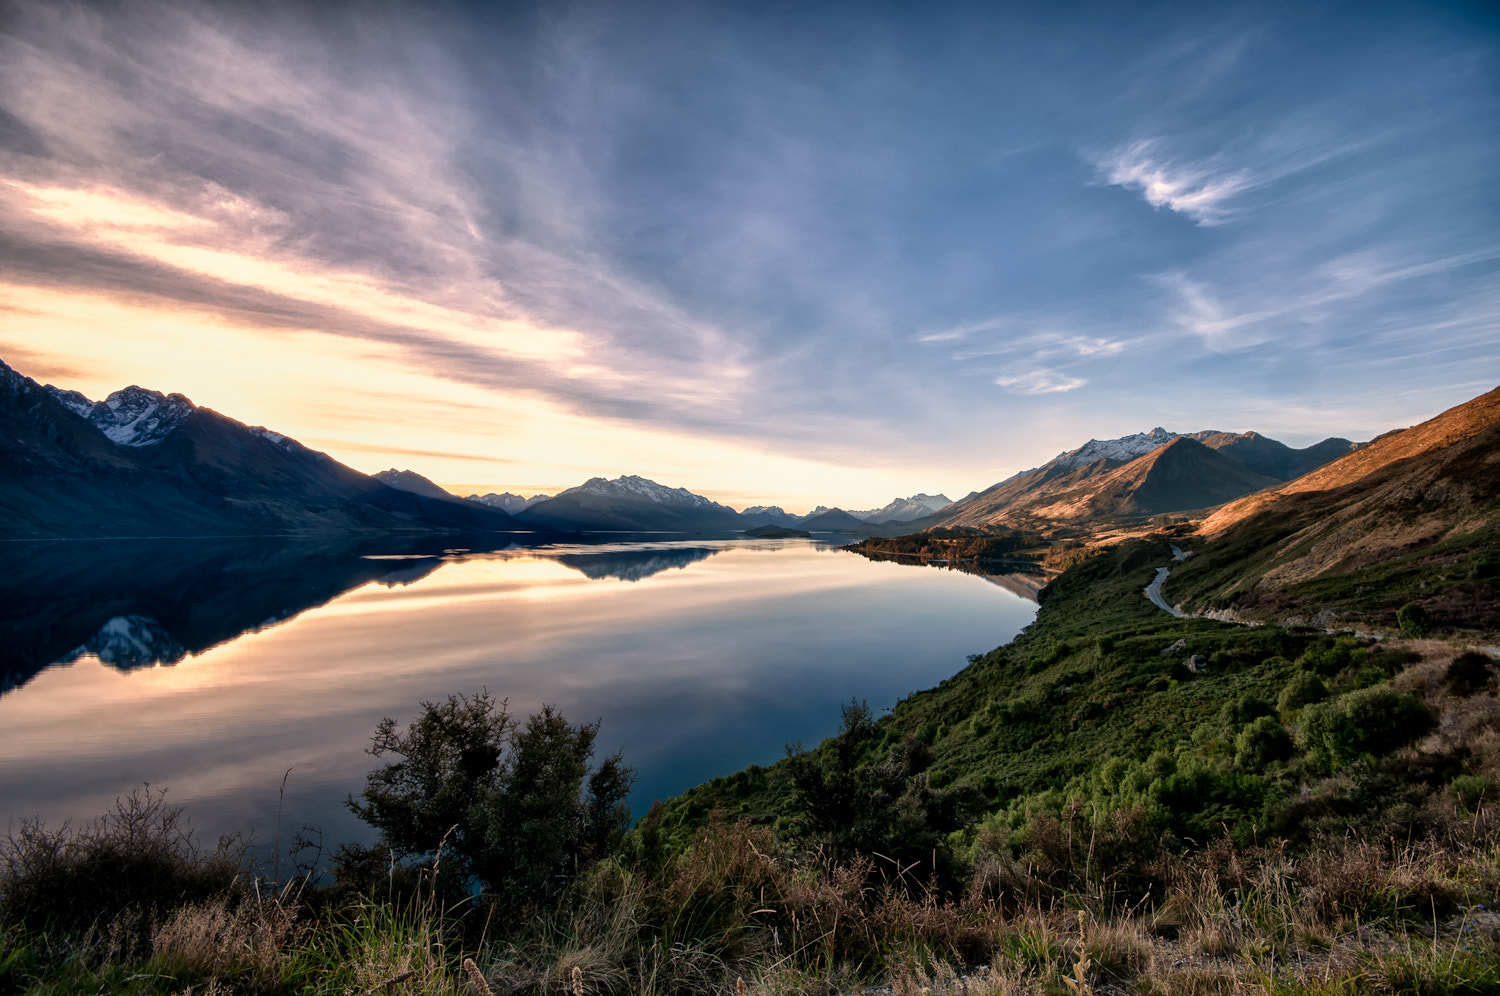 Photograph Bennetts Bluff road - Glenorchy by Martin Tyler on 500px